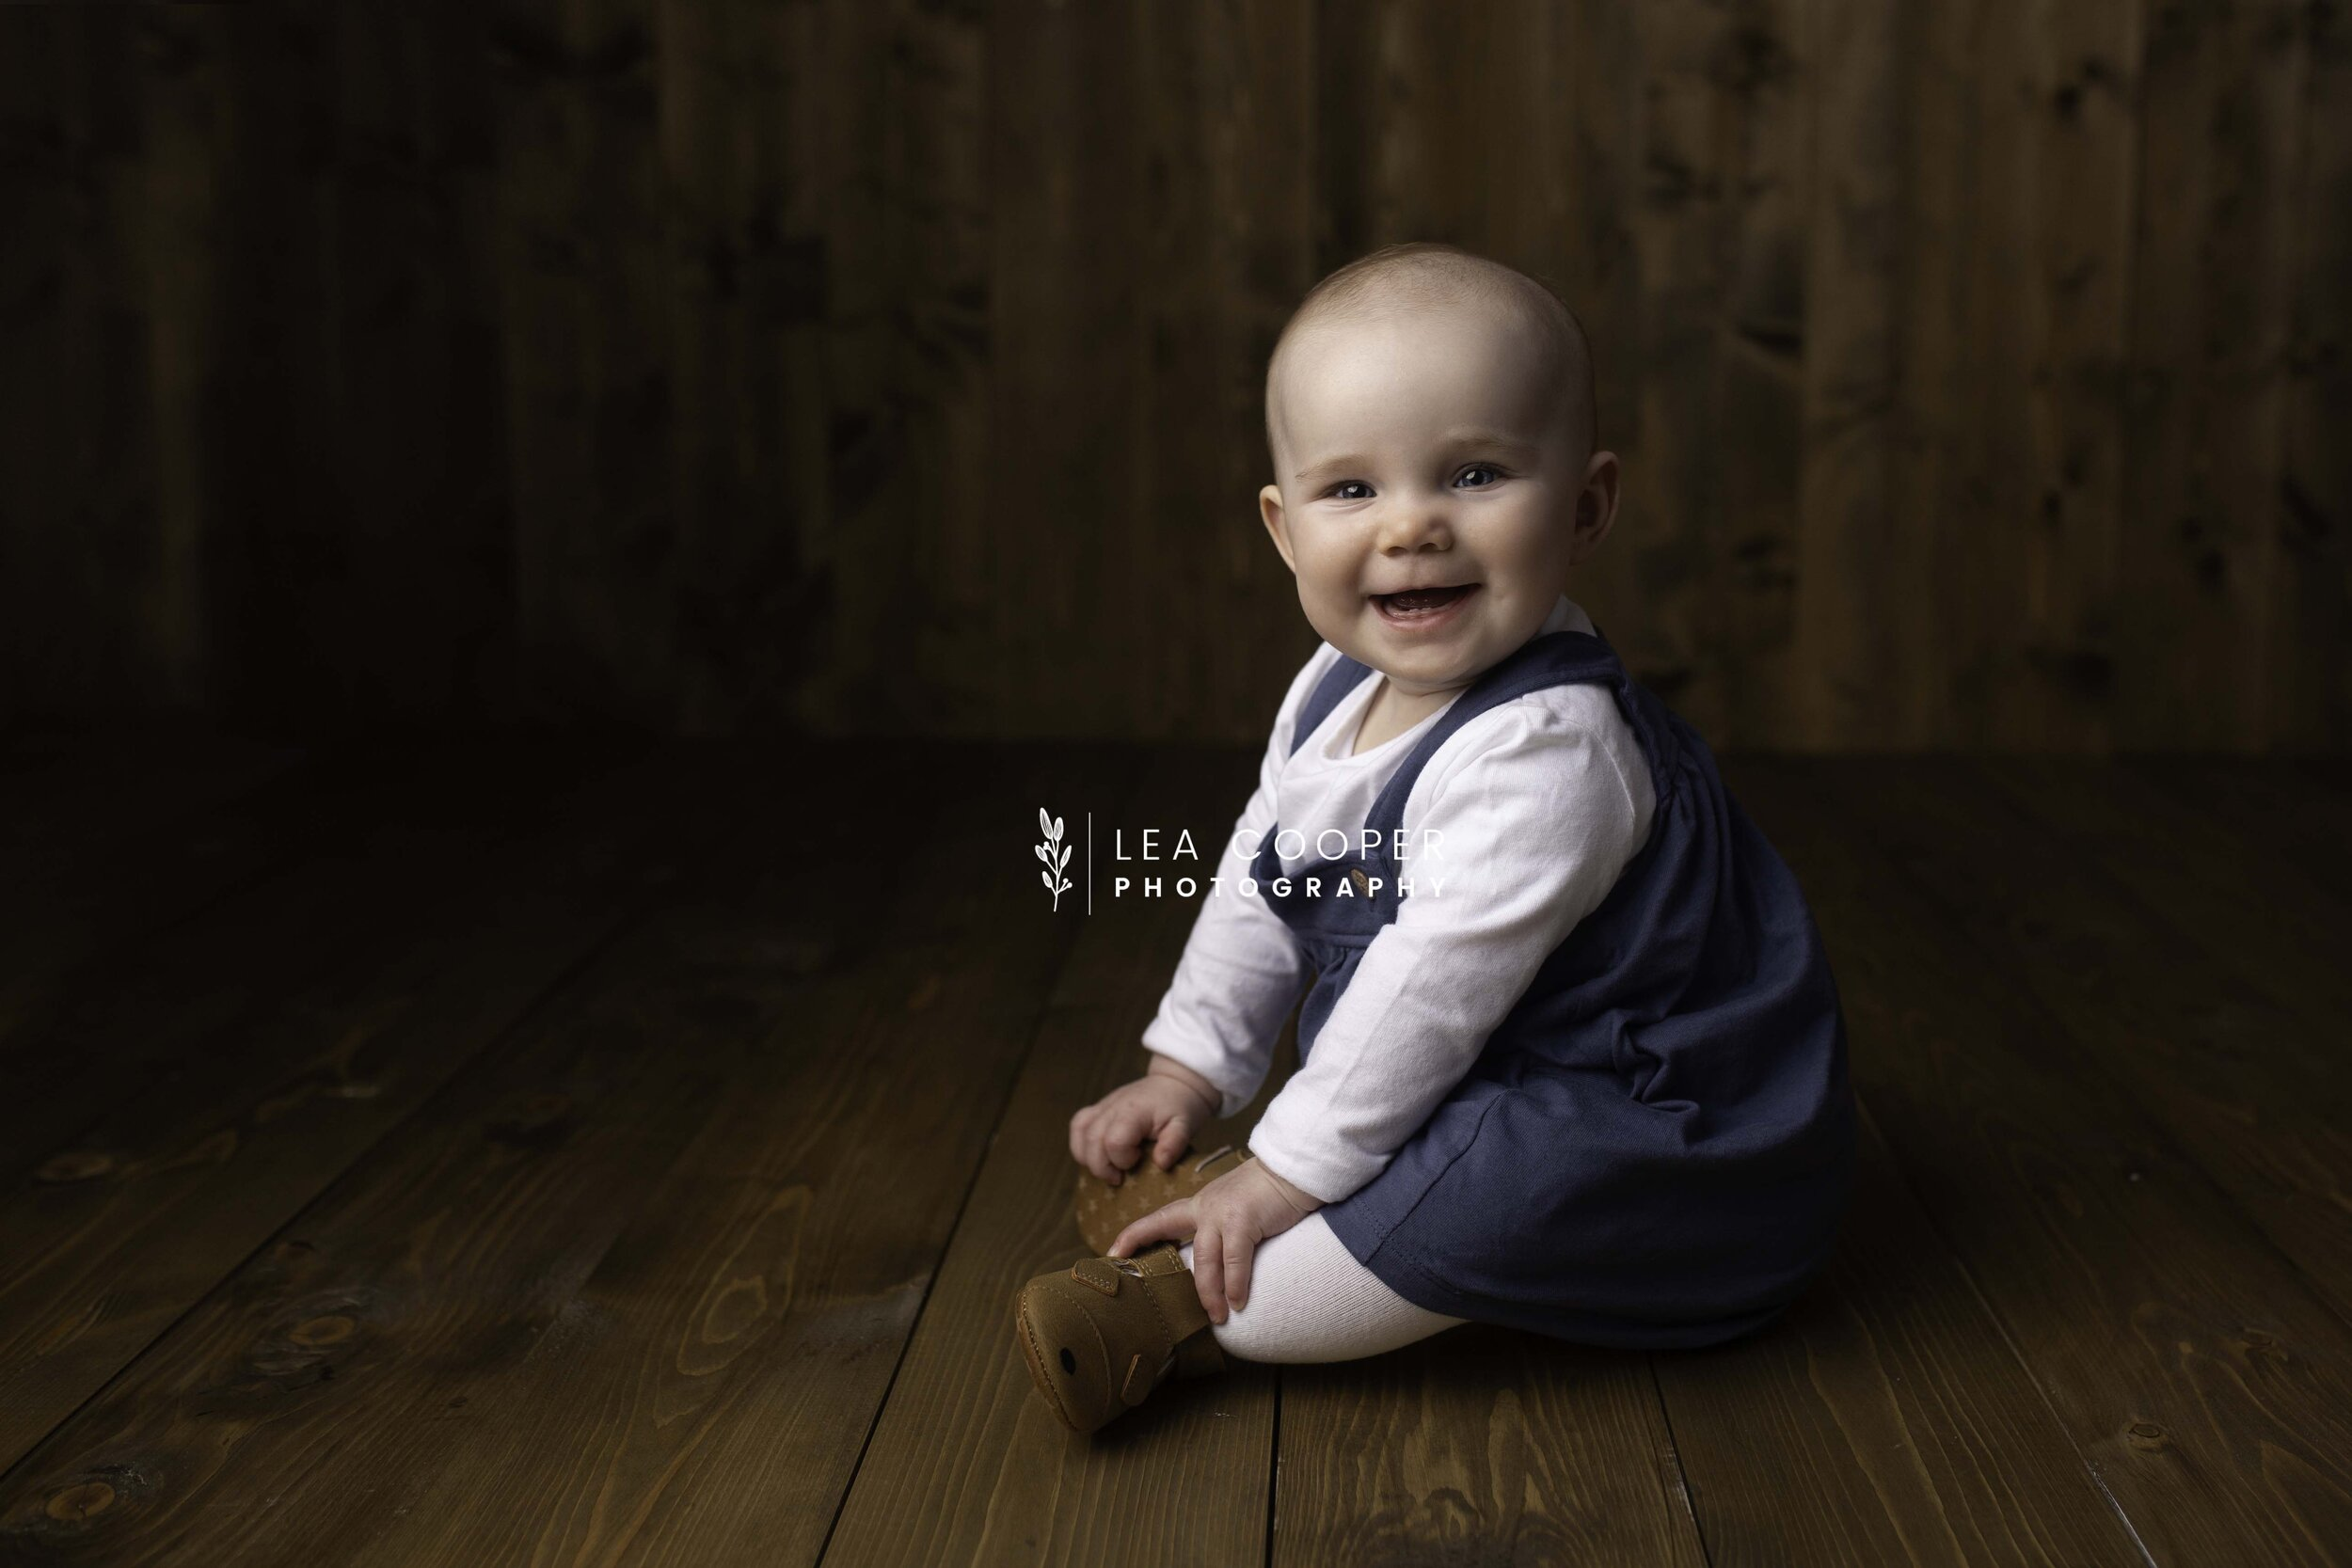 lea-cooper-photography-family-session-family-photoshoot-sitter-session-willenhall-wolverhampton-west-midlands-14.jpg